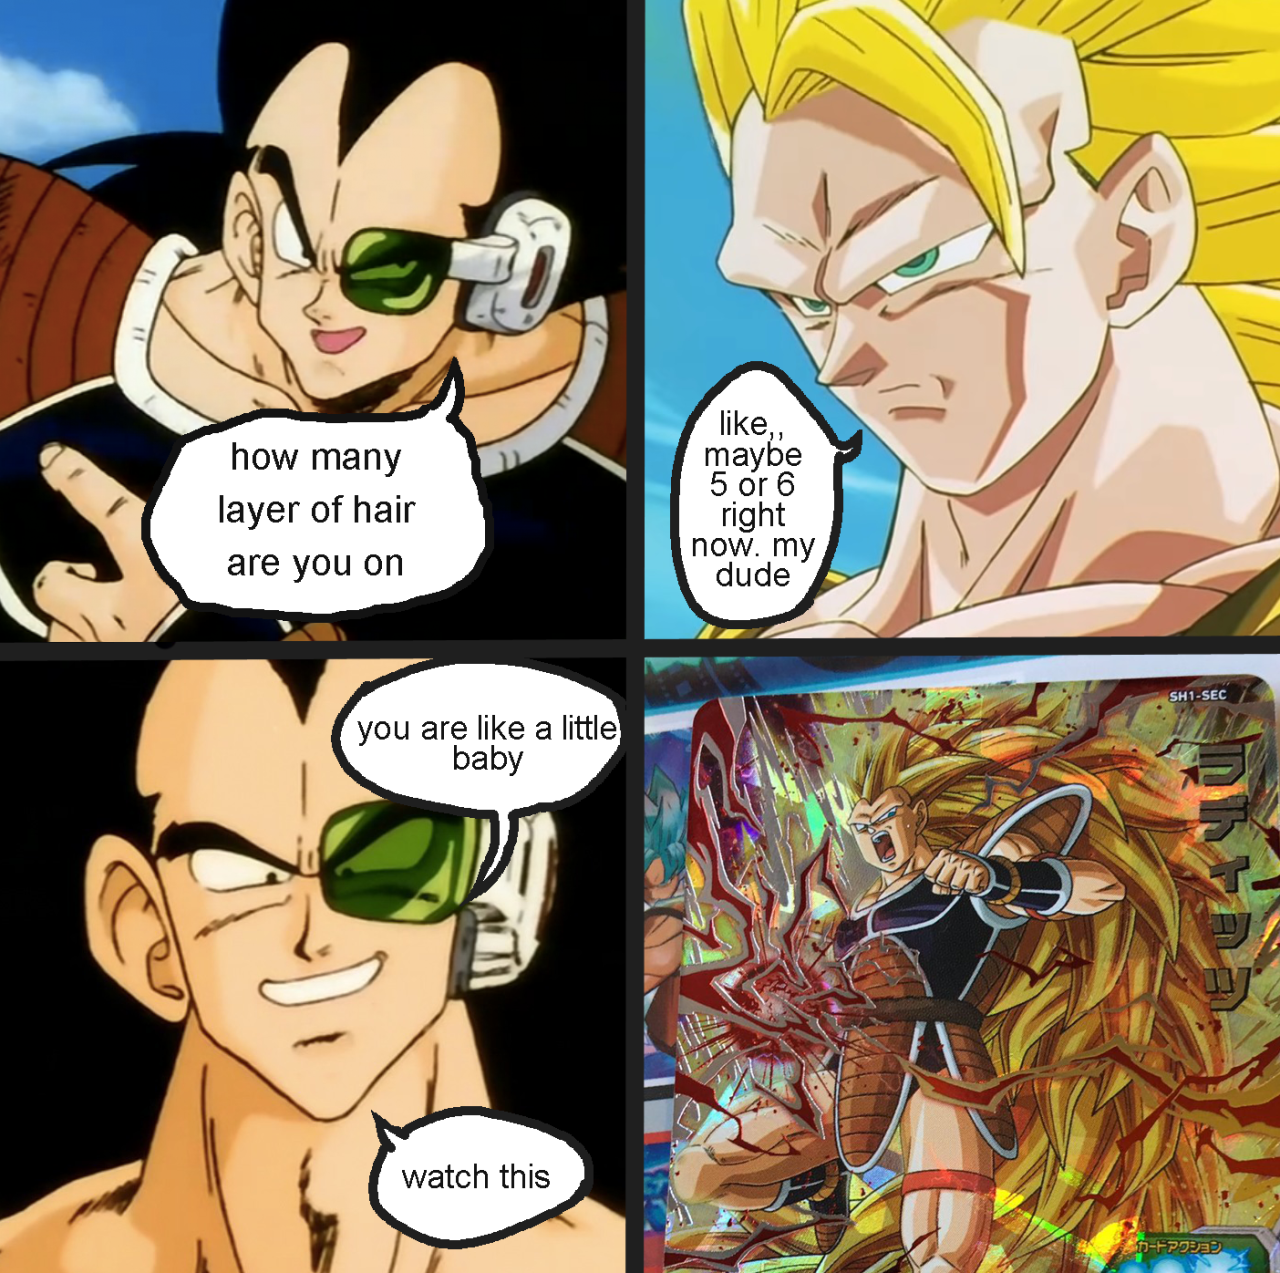 Raditz Goes Ssj3 User Blog Bardockgoku Ssj3 Raditz Dragon Ball Wiki